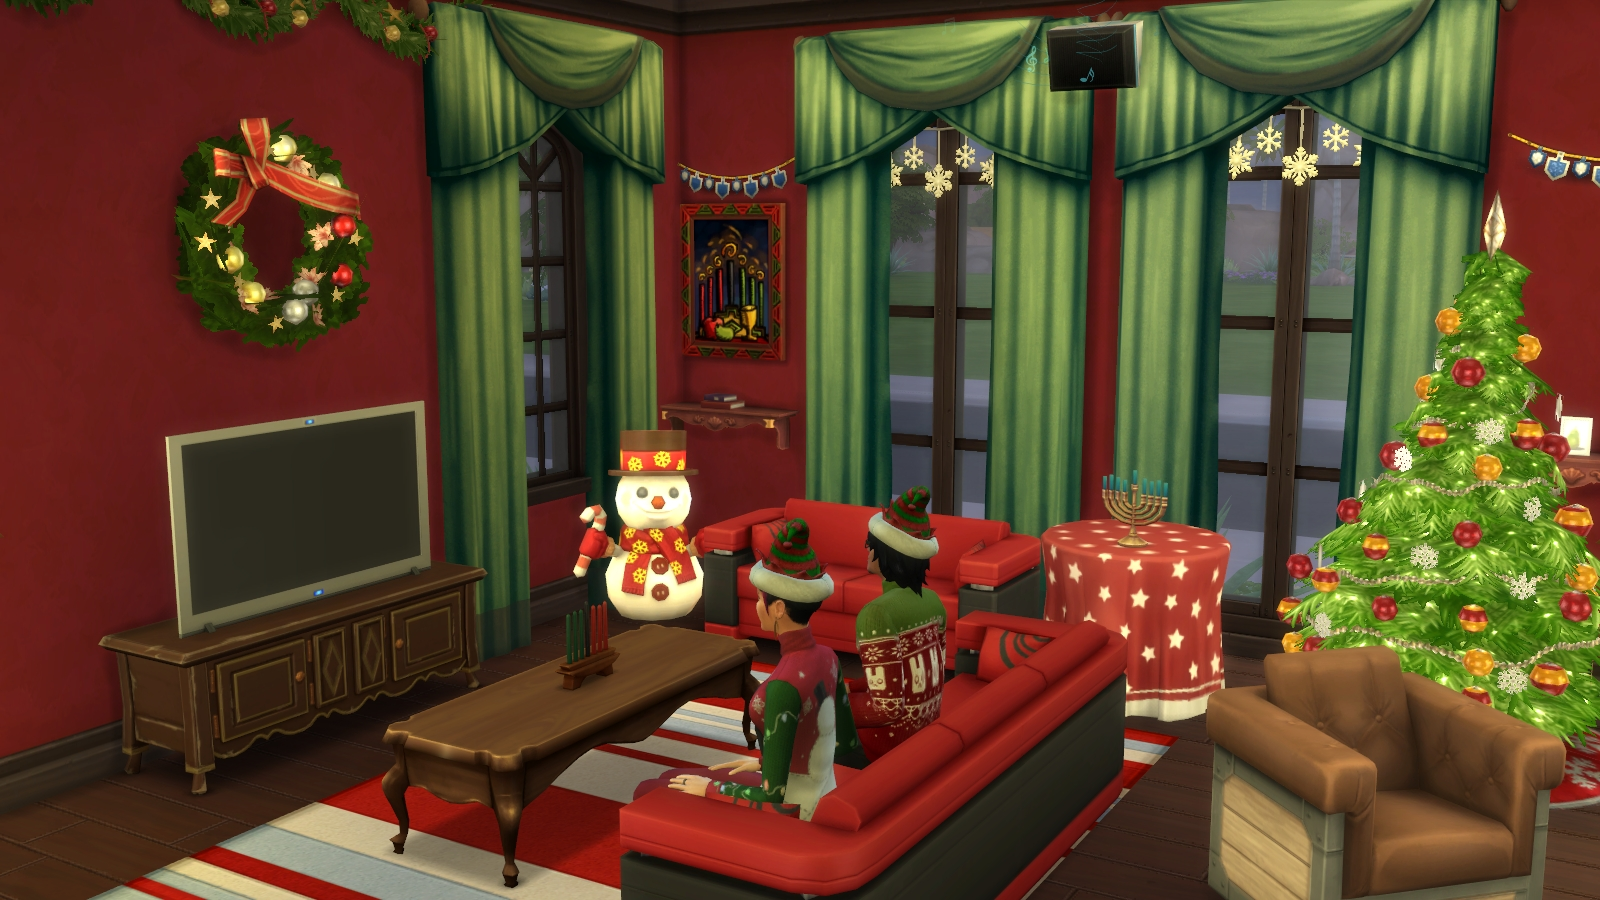 The Sims 4 Holiday Celebration Pack Object List